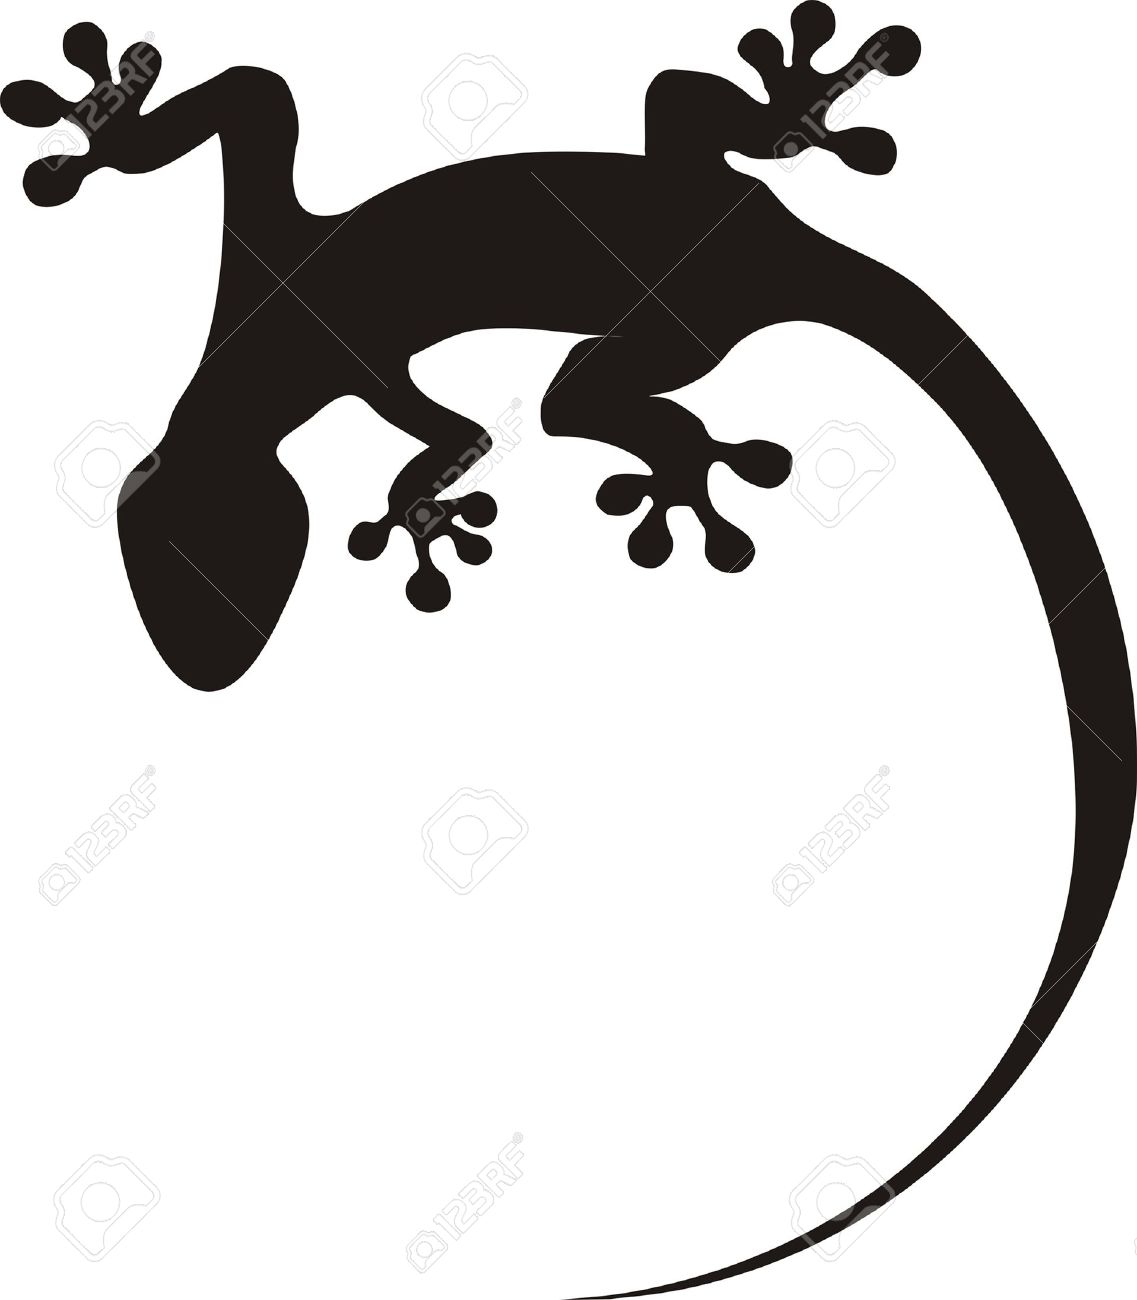 18,976 Gecko Stock Vector Illustration And Royalty Free Gecko Clipart